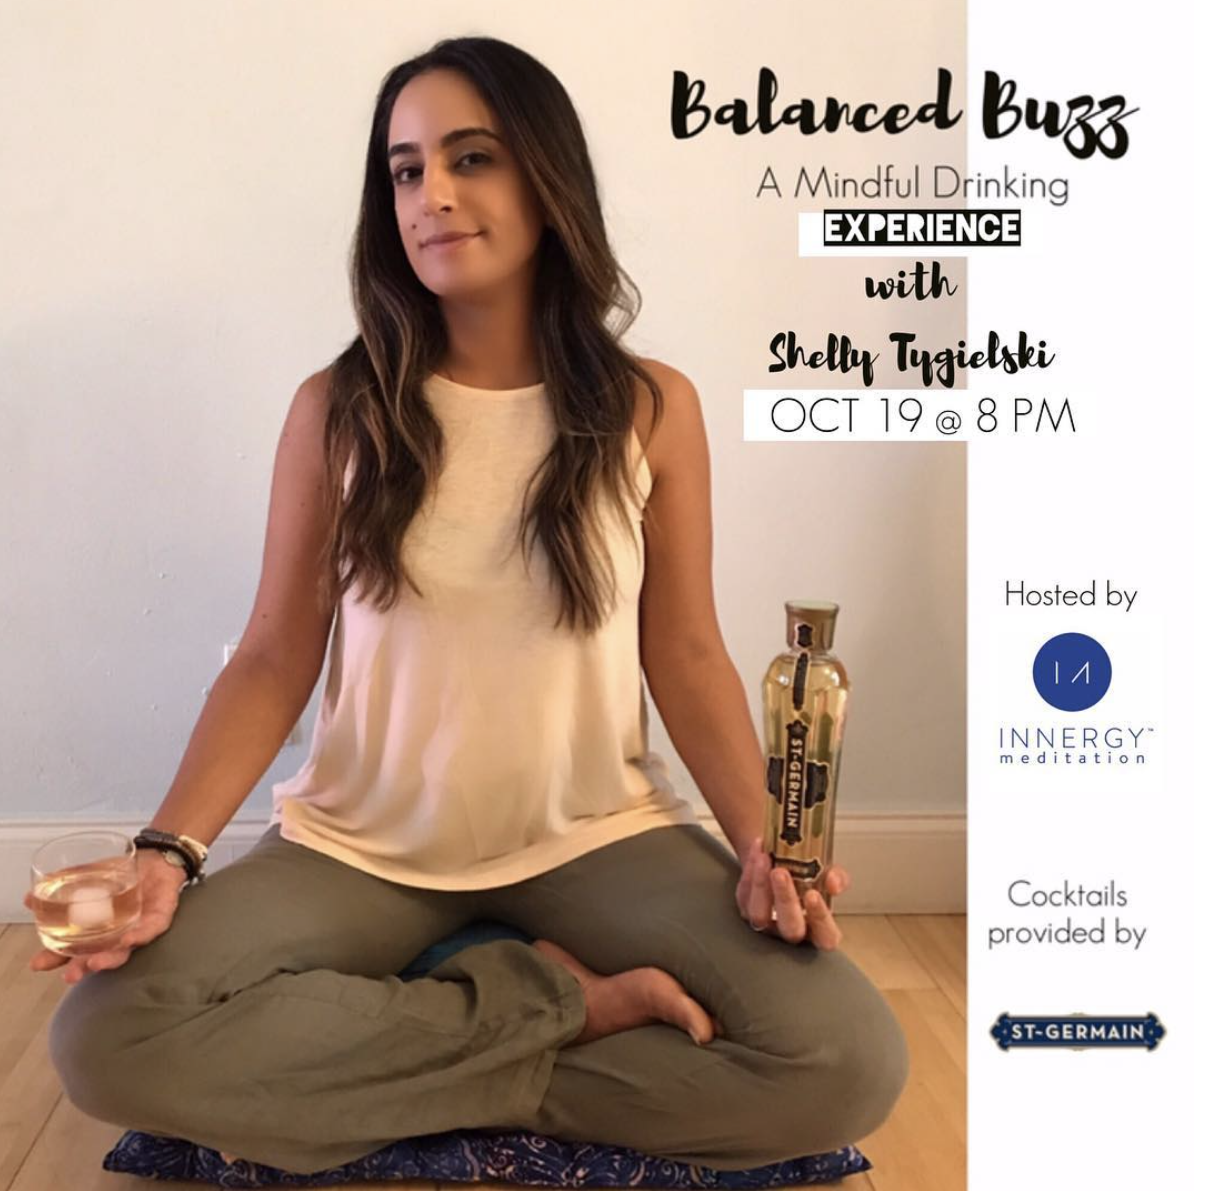 Balanced Buzz: A Mindful Drinking Workshop presented by St. Germain Liquor